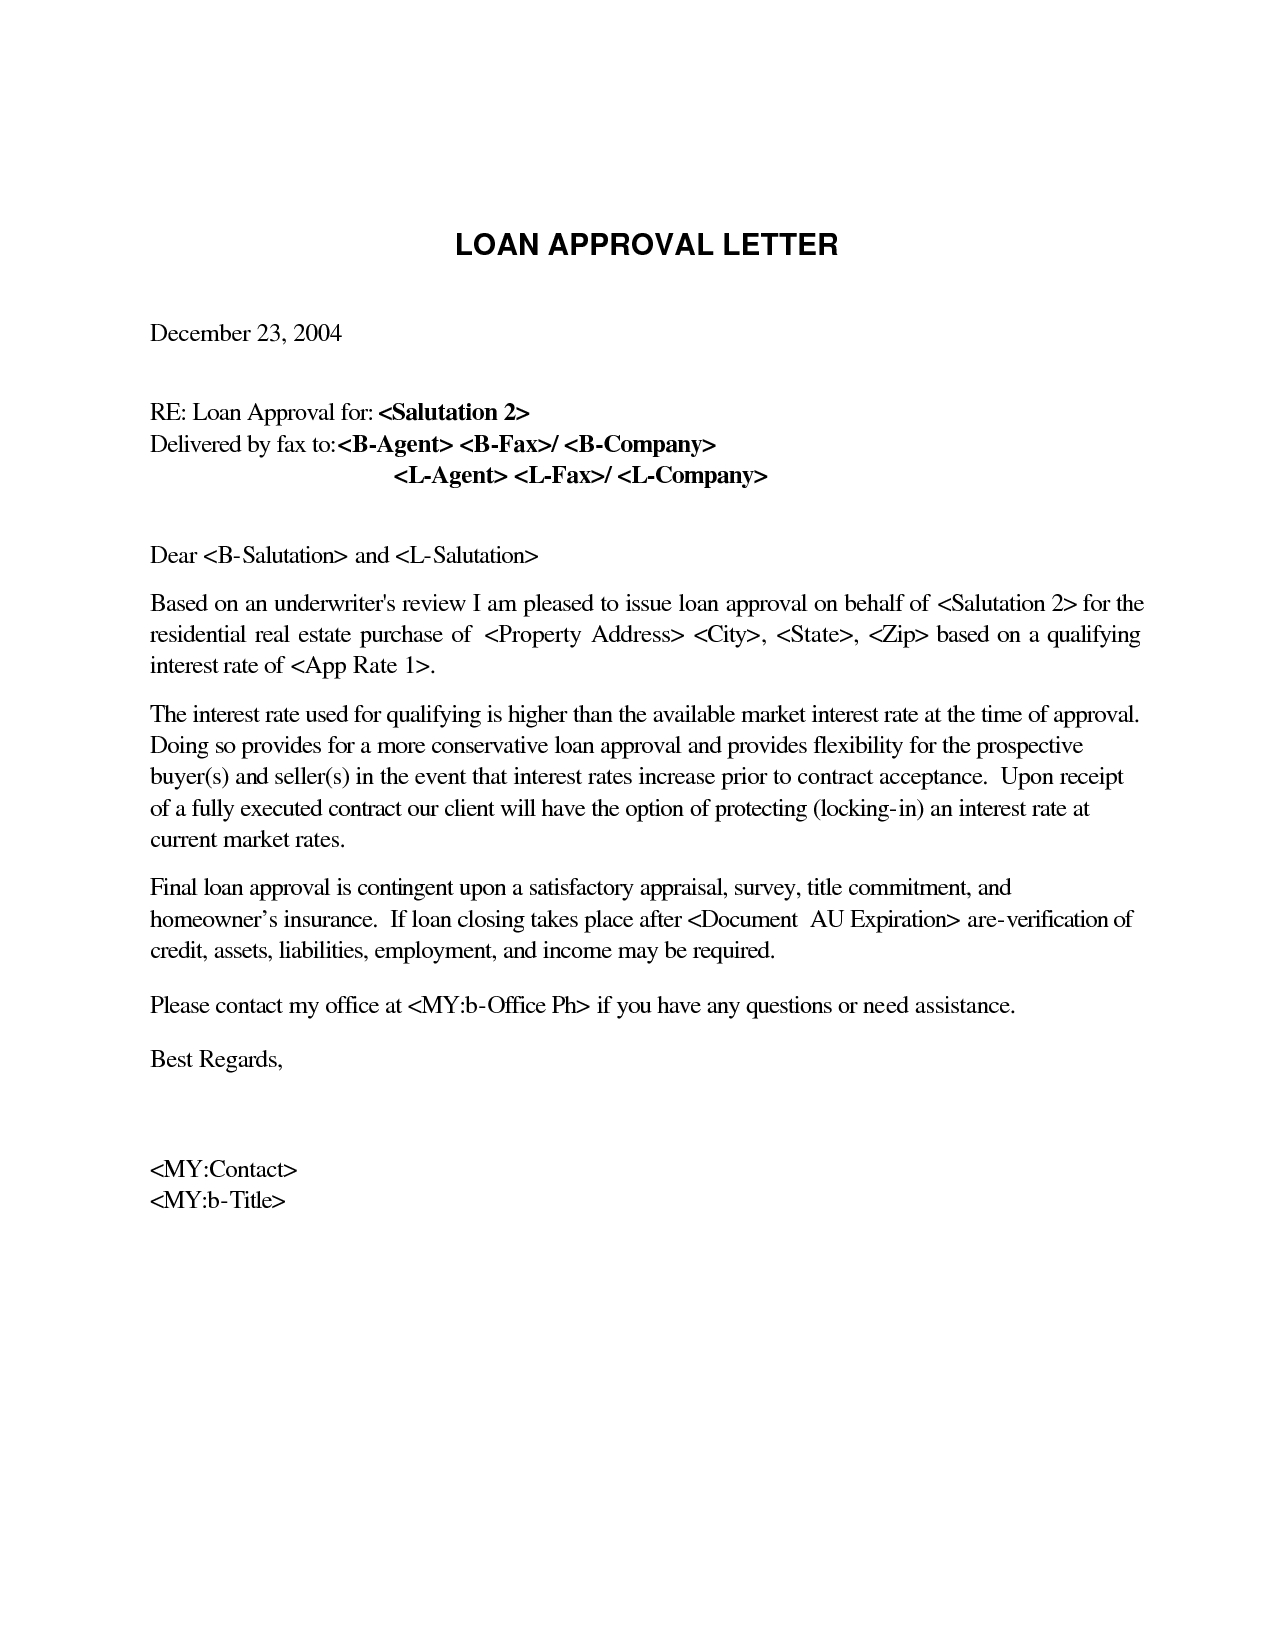 mortgage pre approval letter template samples